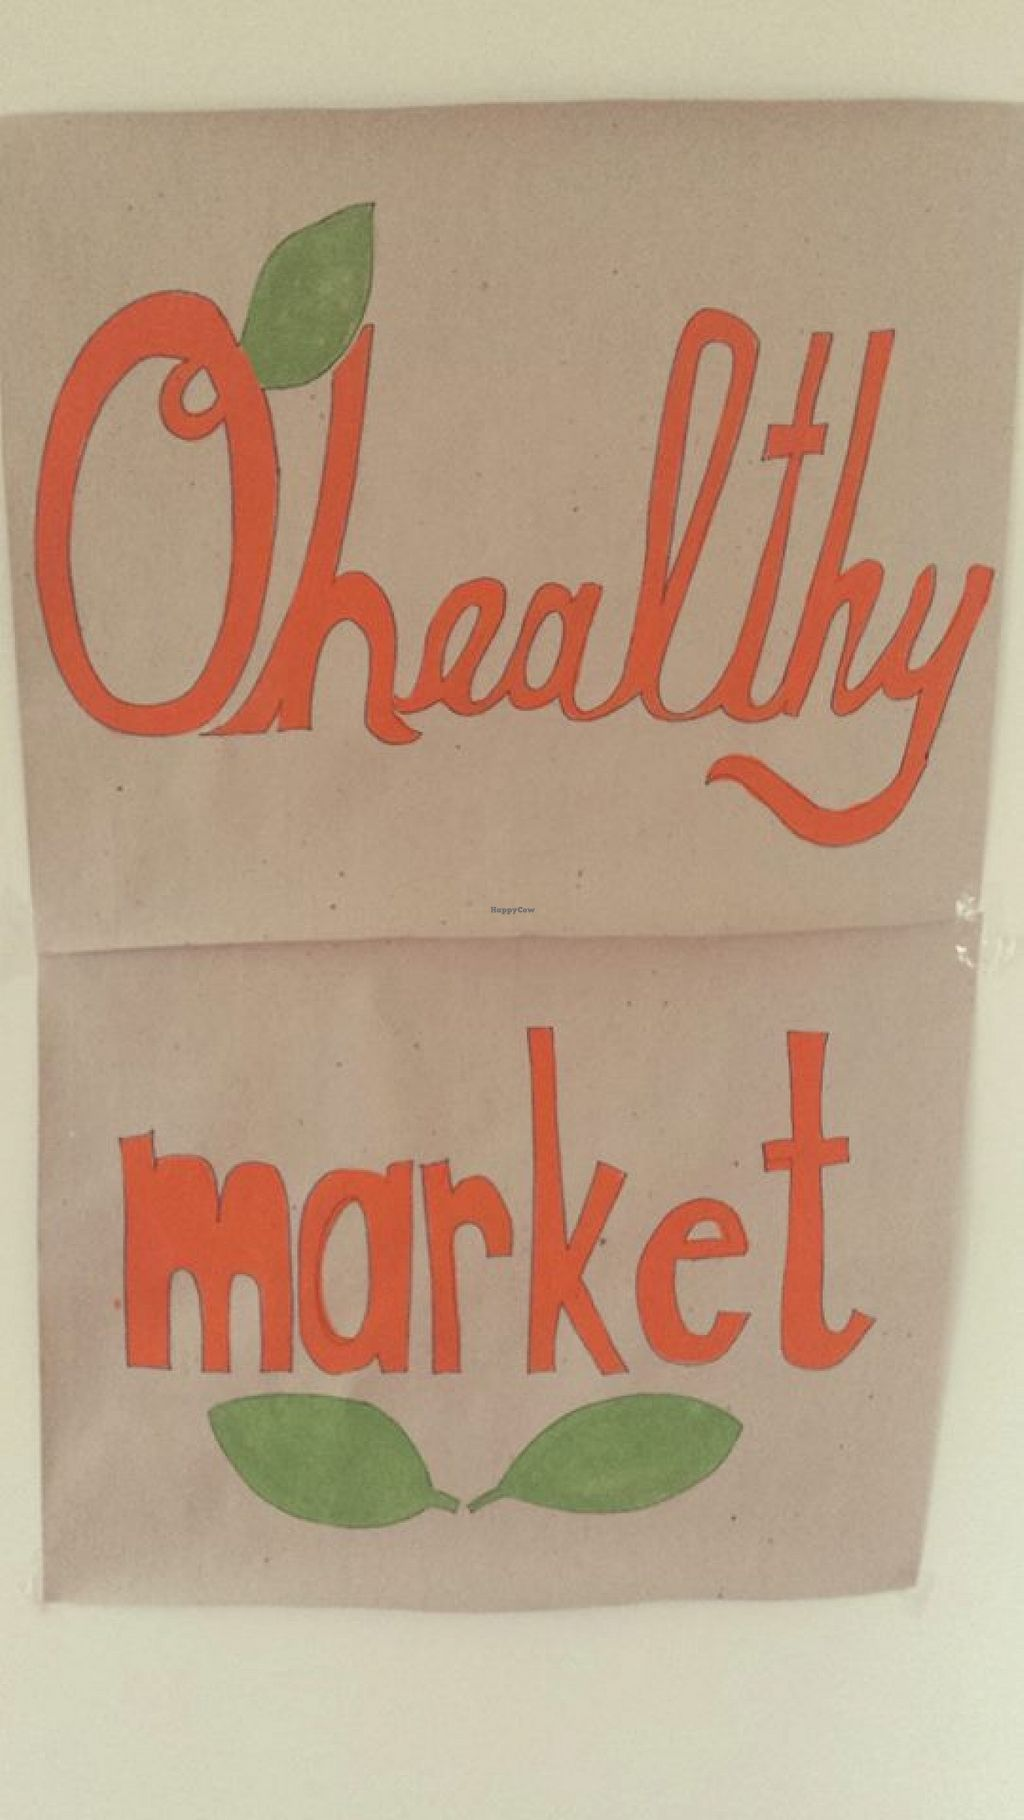 """Photo of REMOVED: OHealthy Market   by <a href=""""/members/profile/QuothTheRaven"""">QuothTheRaven</a> <br/>sign <br/> April 7, 2016  - <a href='/contact/abuse/image/72110/143253'>Report</a>"""